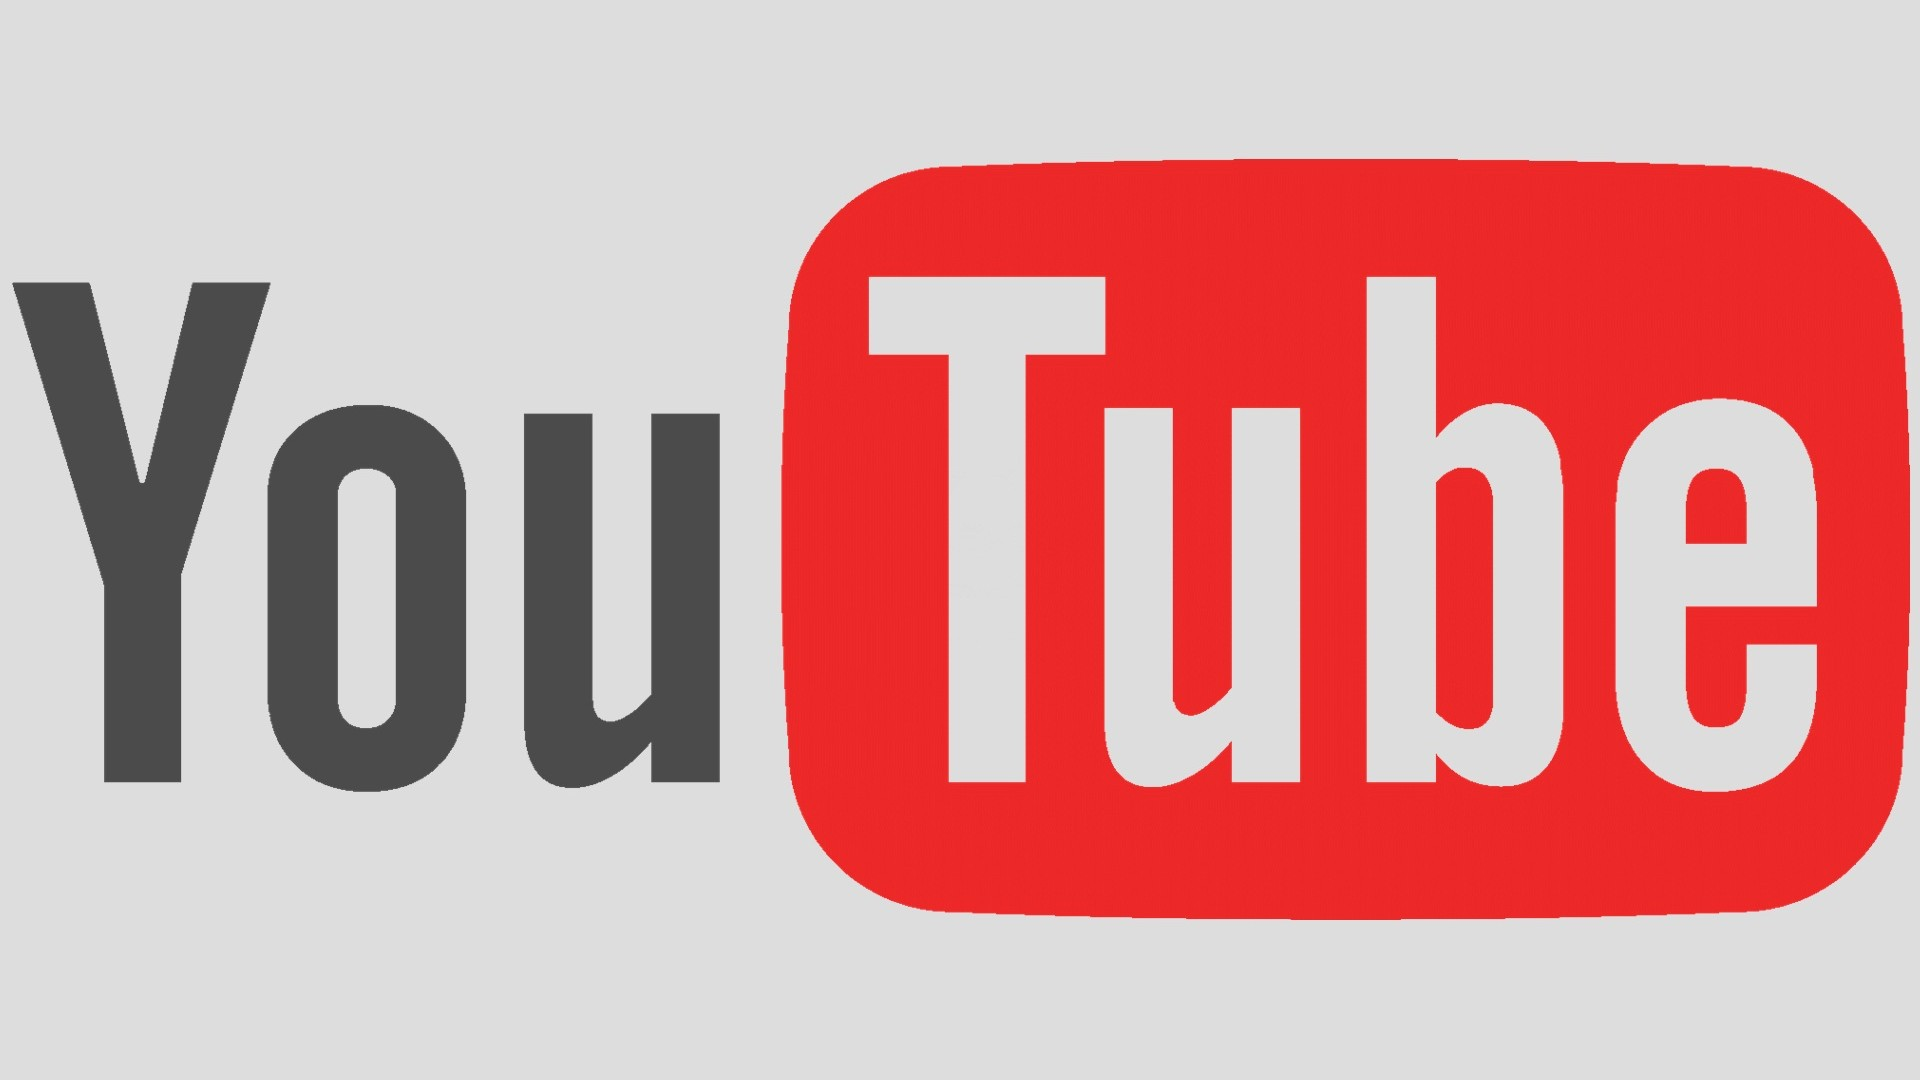 Youtube Logo Wallpaper